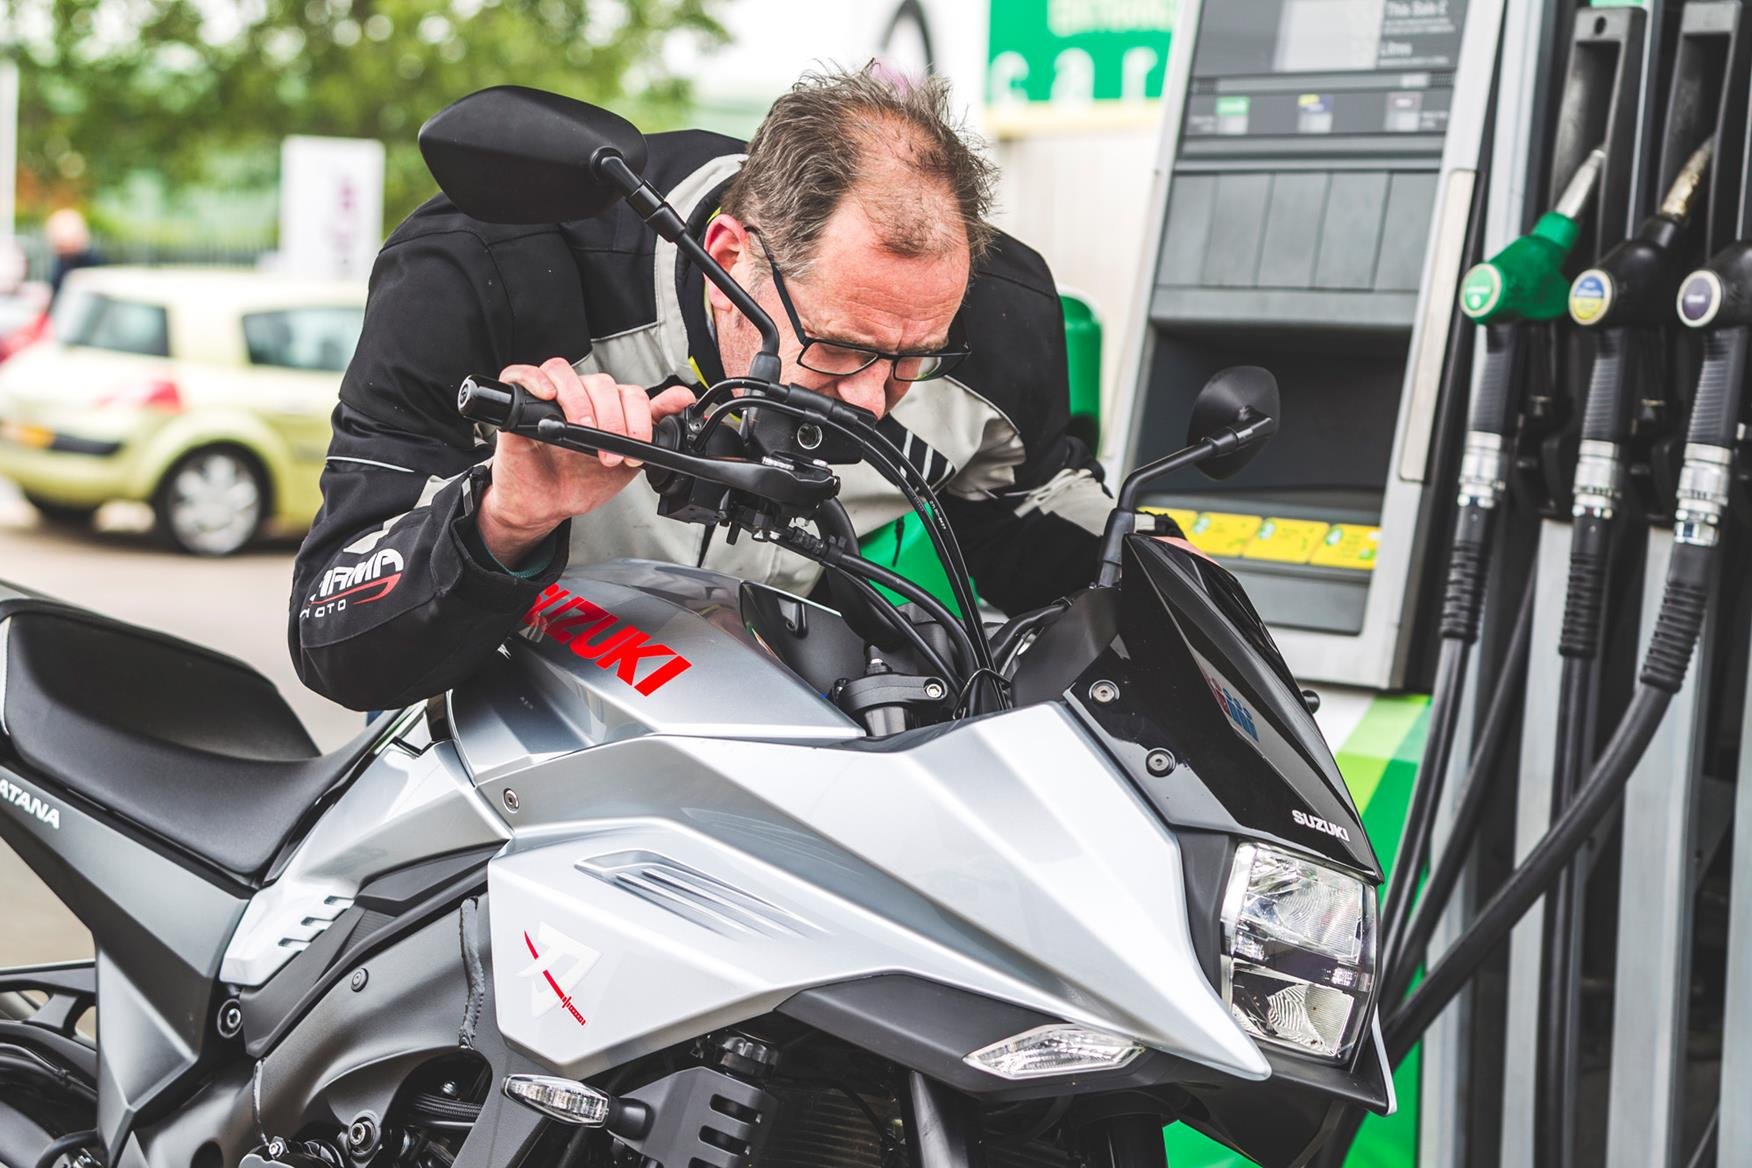 Checking the clocks on the Suzuki Katana